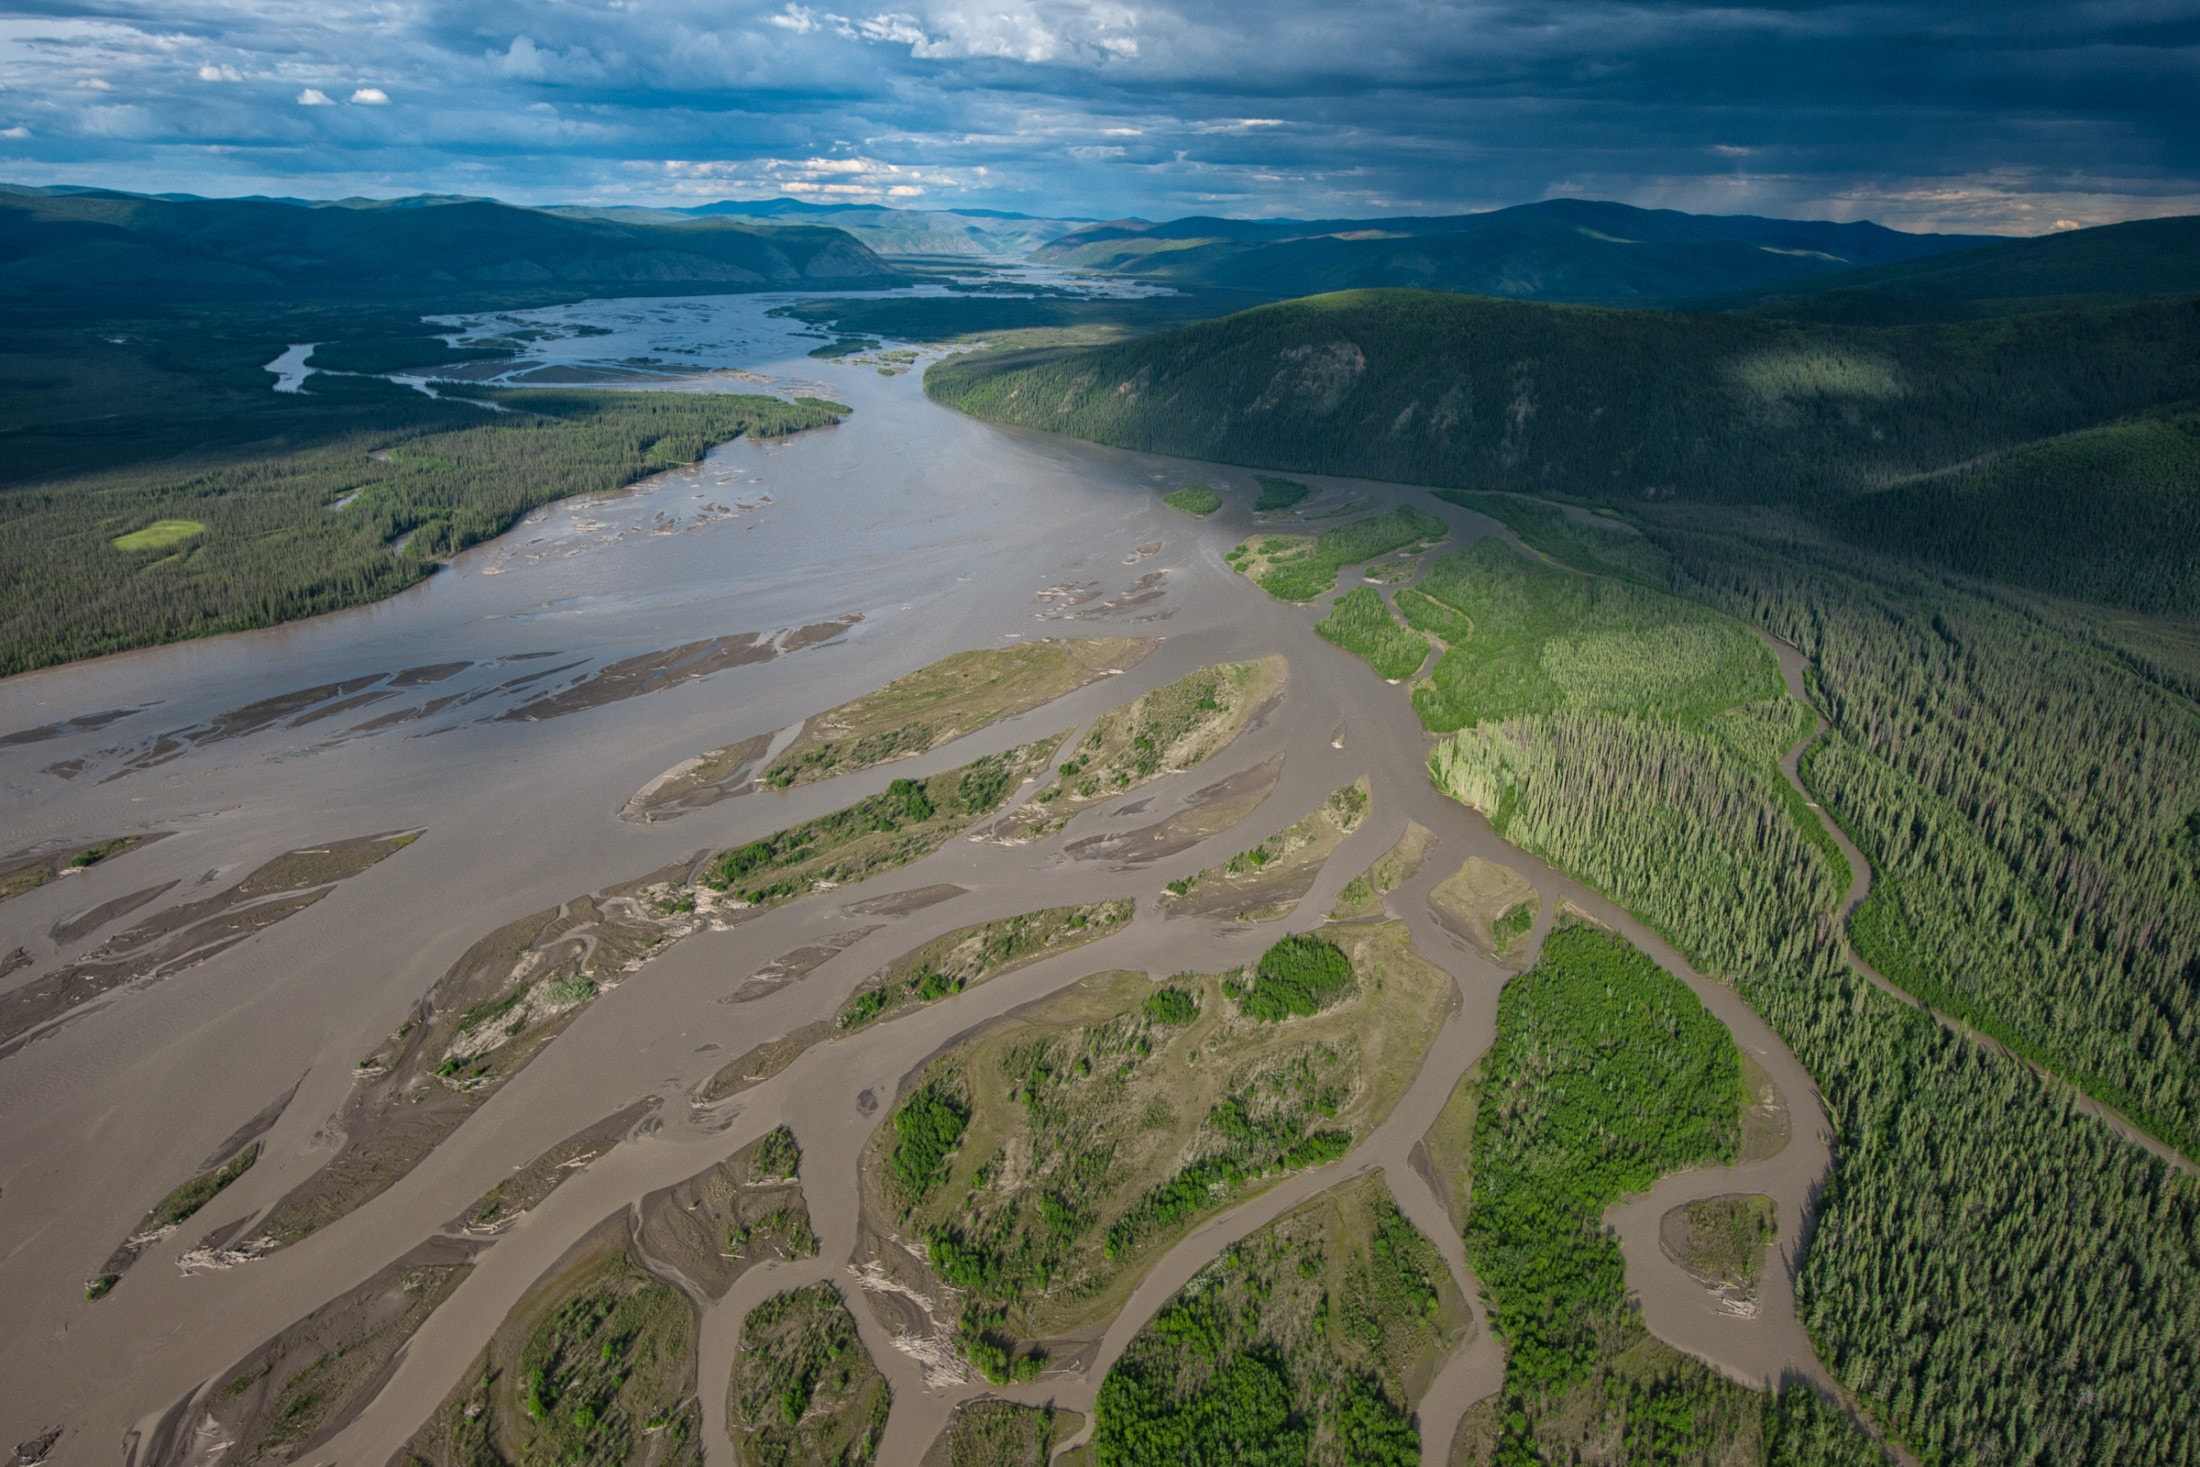 The braided channels of the Yukon River